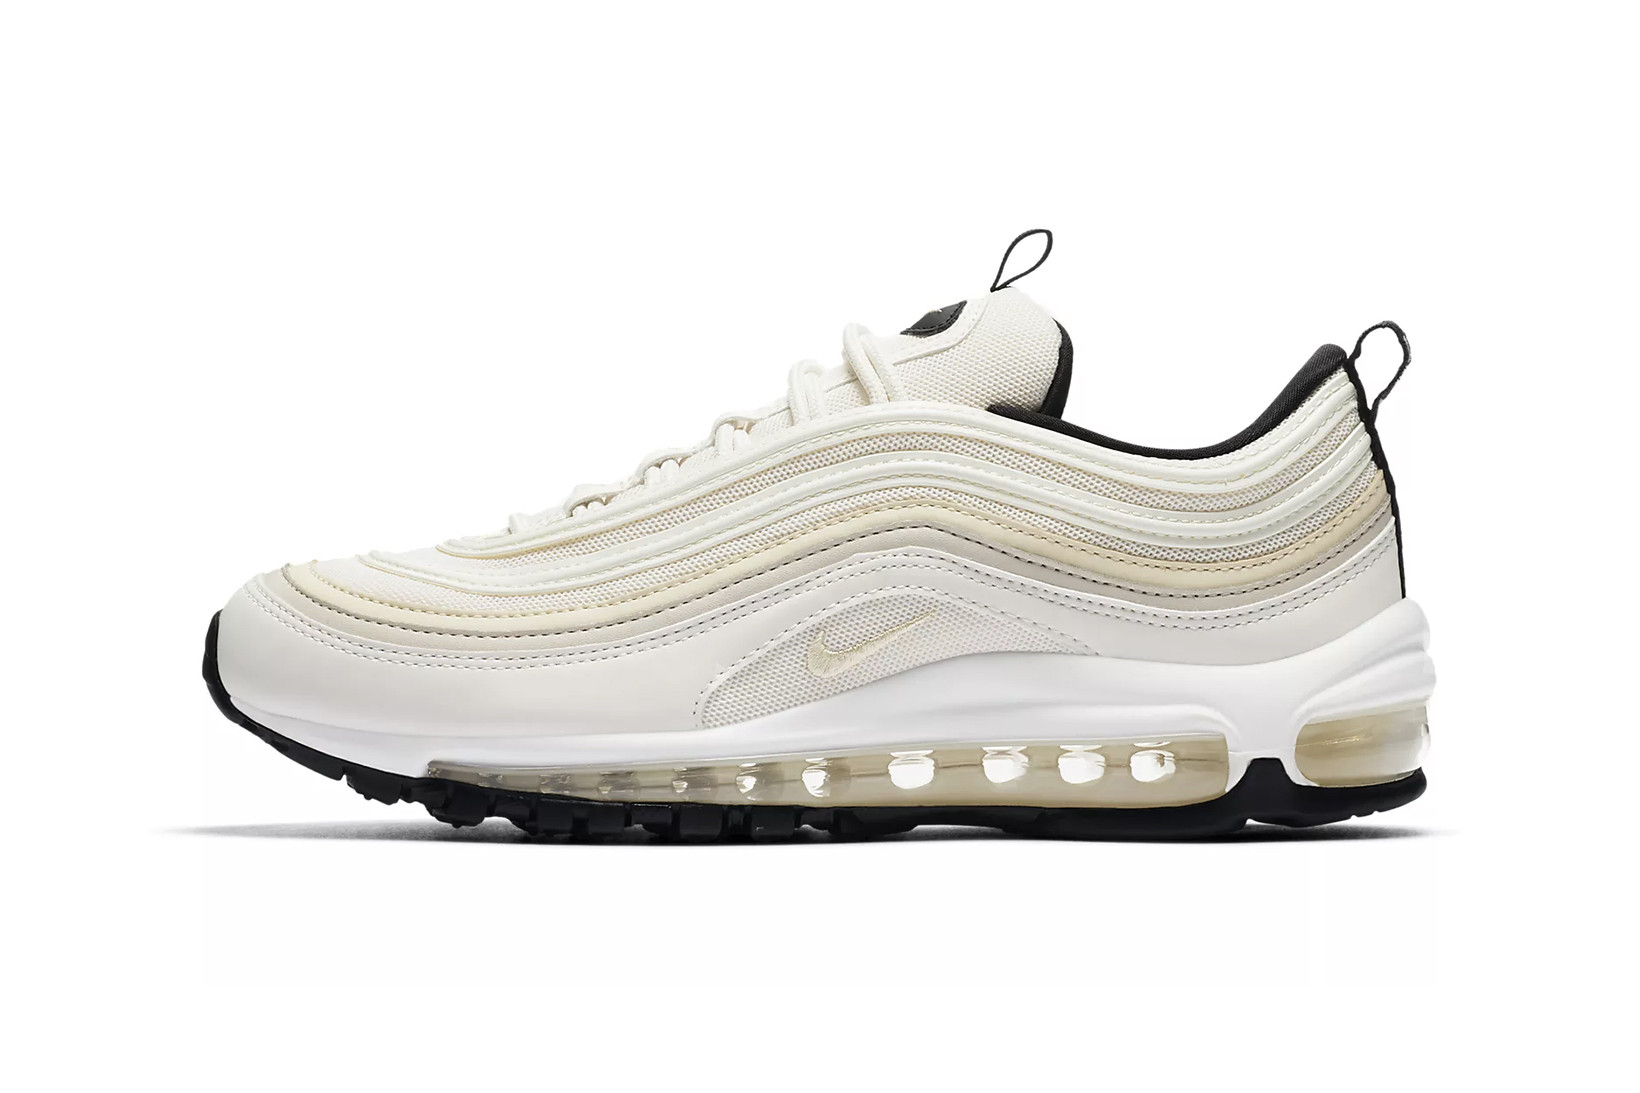 Nike Drops the Air Max 97 in Off-White